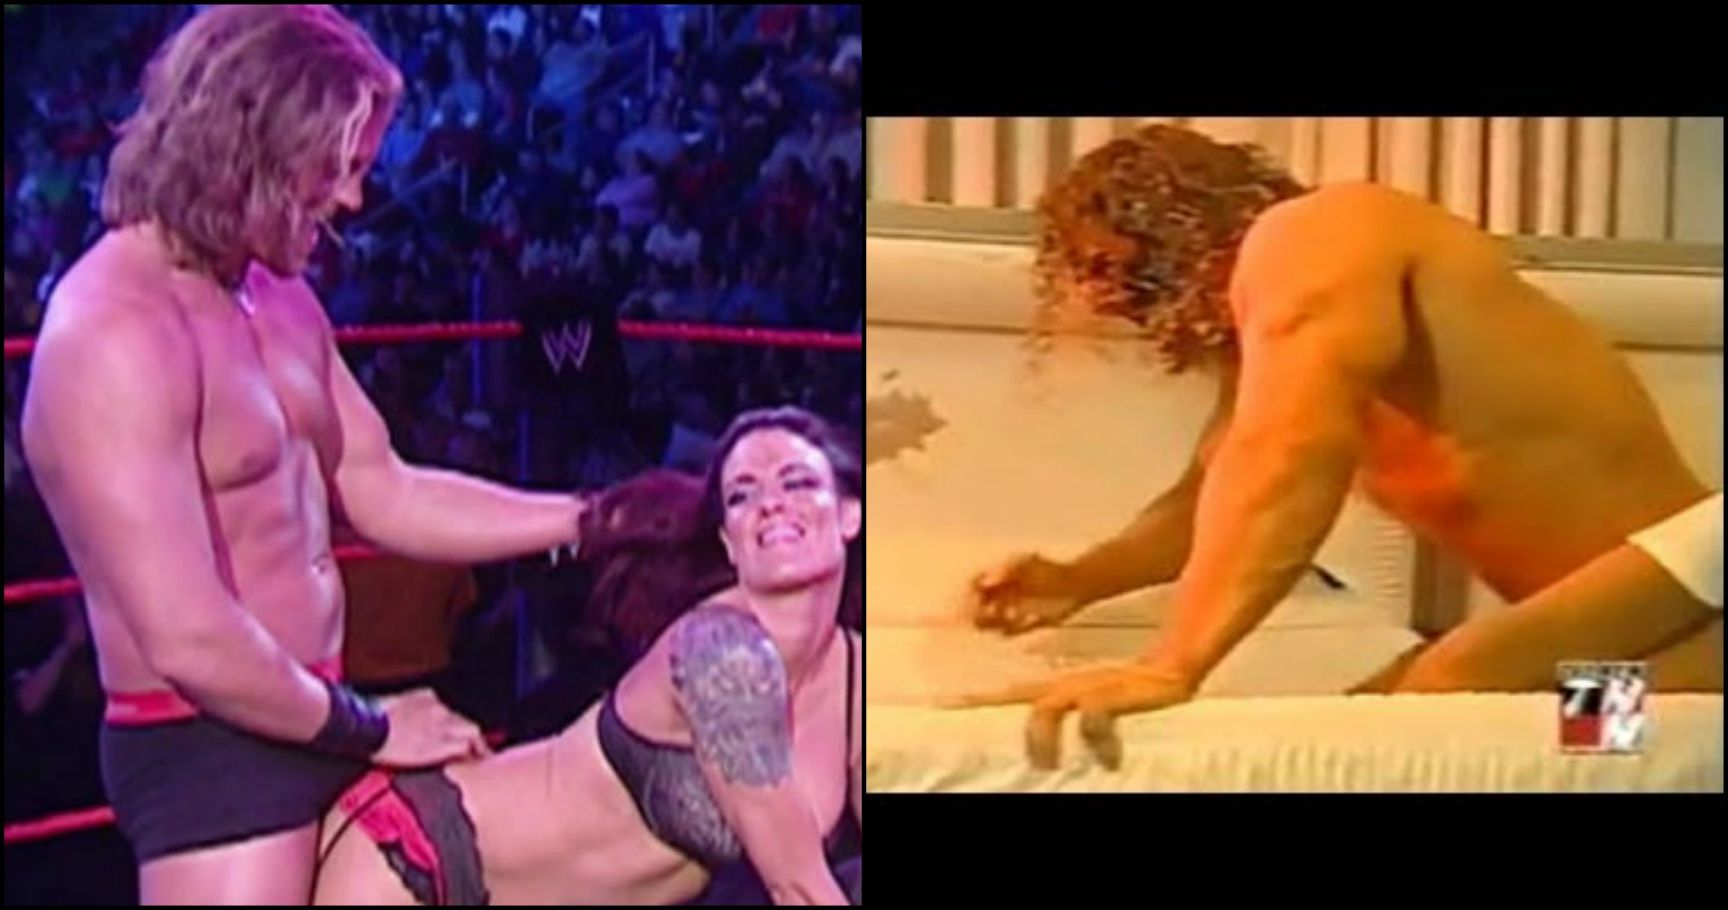 The 15 Worst Moments In Wrestling History | TheRichest